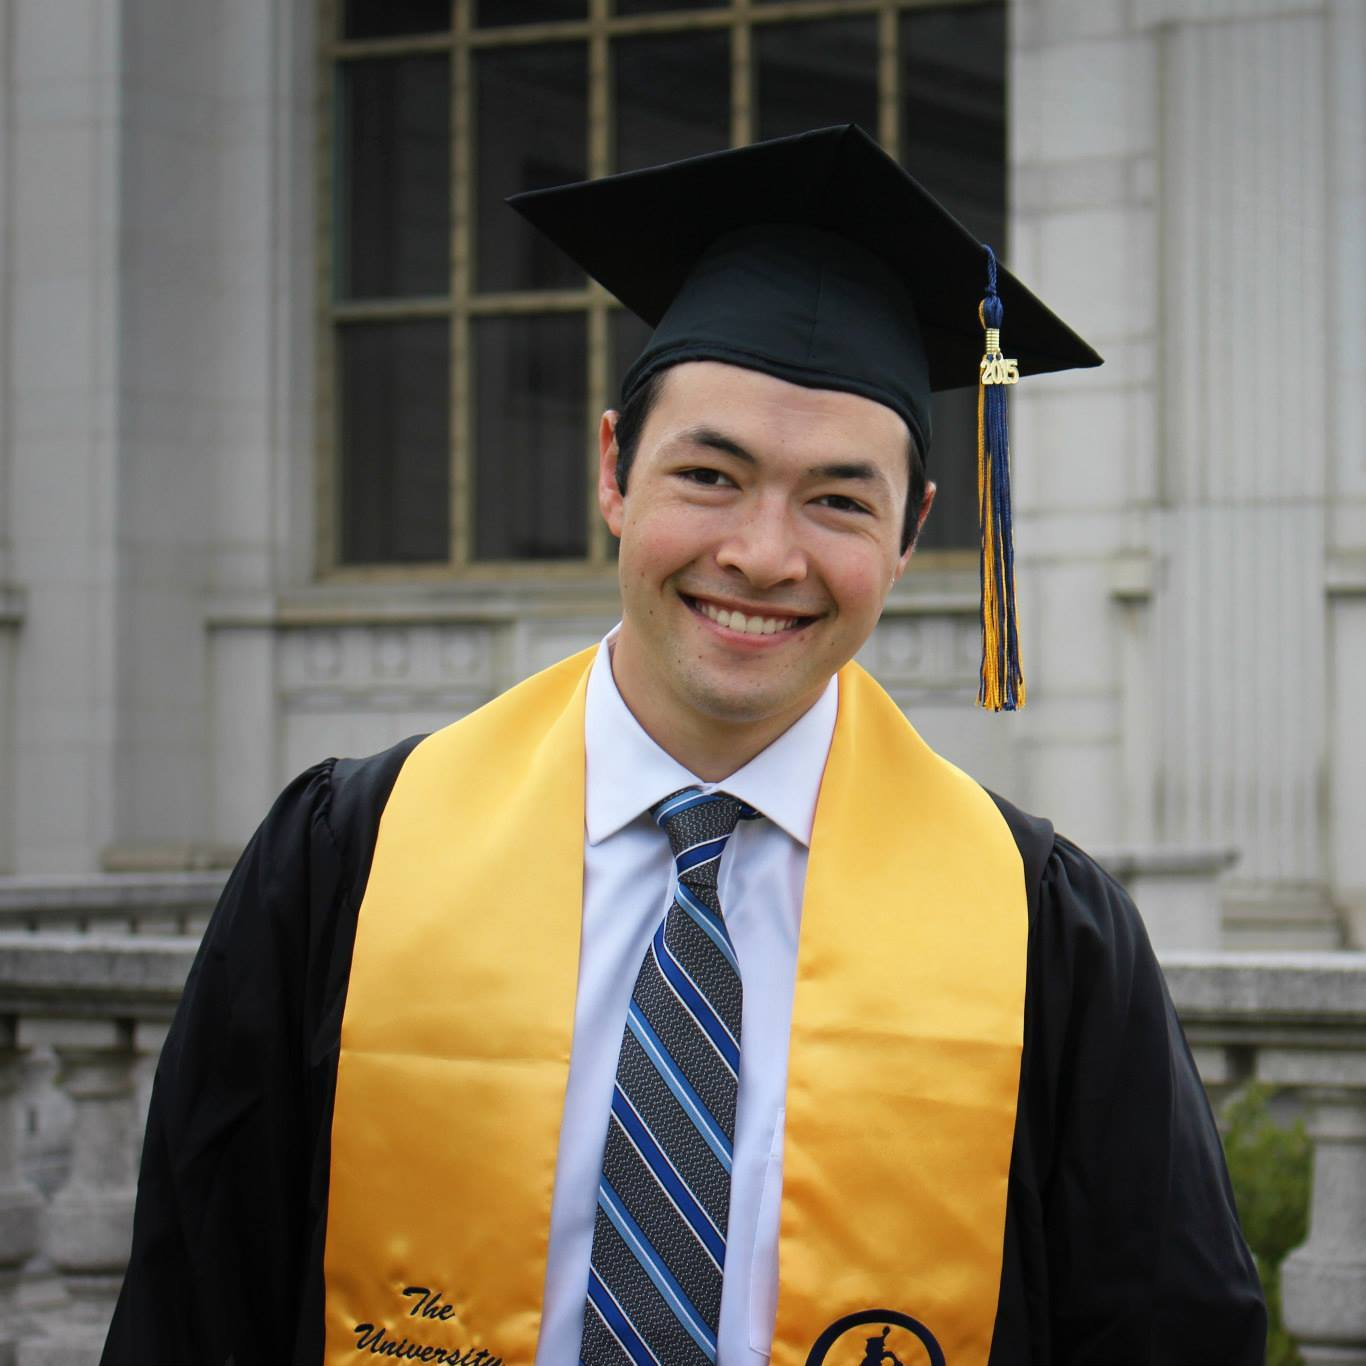 Nick Cotter - Now At: Berkeley Law SchoolClass of 2015 - Majors: Neurobiology & MusicOther Activities: UC Berkeley Symphony Orchestra, UC Wind Ensemble, UC Jazz Ensembles, Cal Band, DeCal Instructor, Staff Writer for The Daily CalifornianFun Fact:I once lost my pants on an orchestra tour in France...About Me:I'm from San Jose, California, and a proud alumnus of Prospect High School. I love the San Francisco Giants, Beethoven, John Coltrane, and not sleeping. Feel free to contact me if you're interested in discussing cerebral anatomy and motor pathways, hormonal feedback systems, or joining any of the Student Musical Activities! GO BEARS!Nick's Awards:2015 National Championship Tournament - Cincinnati, OH (University of Cincinnati)All-American Attorney (24/30 Ranks)2015 Boise Regional Tournament - Boise, ID (University of Idaho)All-Region Attorney (20/20 Ranks)2015 Downtown Invitational - New York, NY (New York University)Outstanding Attorney (42/50 Ranks)2014 Anteater Invitational Tournament - Newport Beach, CA (UC Irvine)Team MVP (20/20 Ranks)2014 CUBAIT - New York, NY (Columbia University)Outstanding Attorney (16/20 Ranks)2014 Saint Louis Championship Qualifier Tournament - St. Louis, MO (Washington University in St. Louis)All-National Defense Attorney (20/20 Ranks)All-National Prosecution Attorney (20/20 Ranks)2014 Fresno Regional Tournament - Fresno, CA (Fresno State University)All-Region Attorney (16/20 Ranks)2013 Great Sonoran Showdown - Tucson, AZ (University of Arizona)Outstanding Attorney (18/20 Ranks)2013 Vanessa Sullivan Memorial Invitational - Berkeley, CA (UC Berkeley)Outstanding Attorney (18/20 Ranks)2012 Fresno Regional Tournament - Fresno, CA (Fresno State University)All-Region Witness (17/20 Ranks)